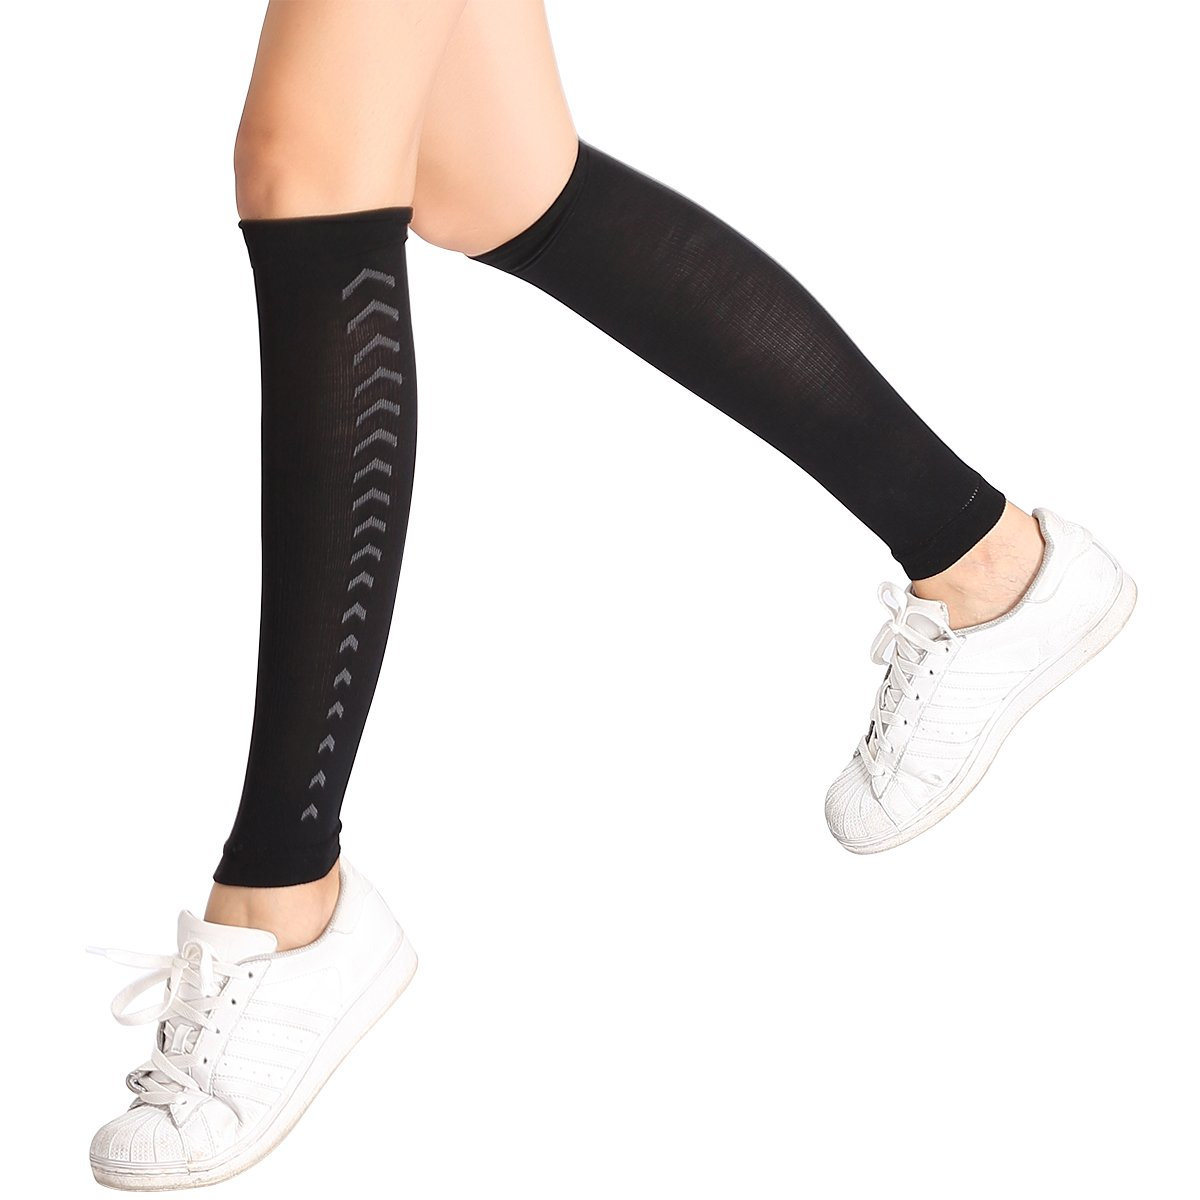 NEVGIVUP Calf Compression Sleeves Leg Compression Socks Relieve Calf Pain for Men & Women -Great for Running, Sports Jackets, Medical, Travel, Nursing, Cycling, Circulation & Recovery LIHAO